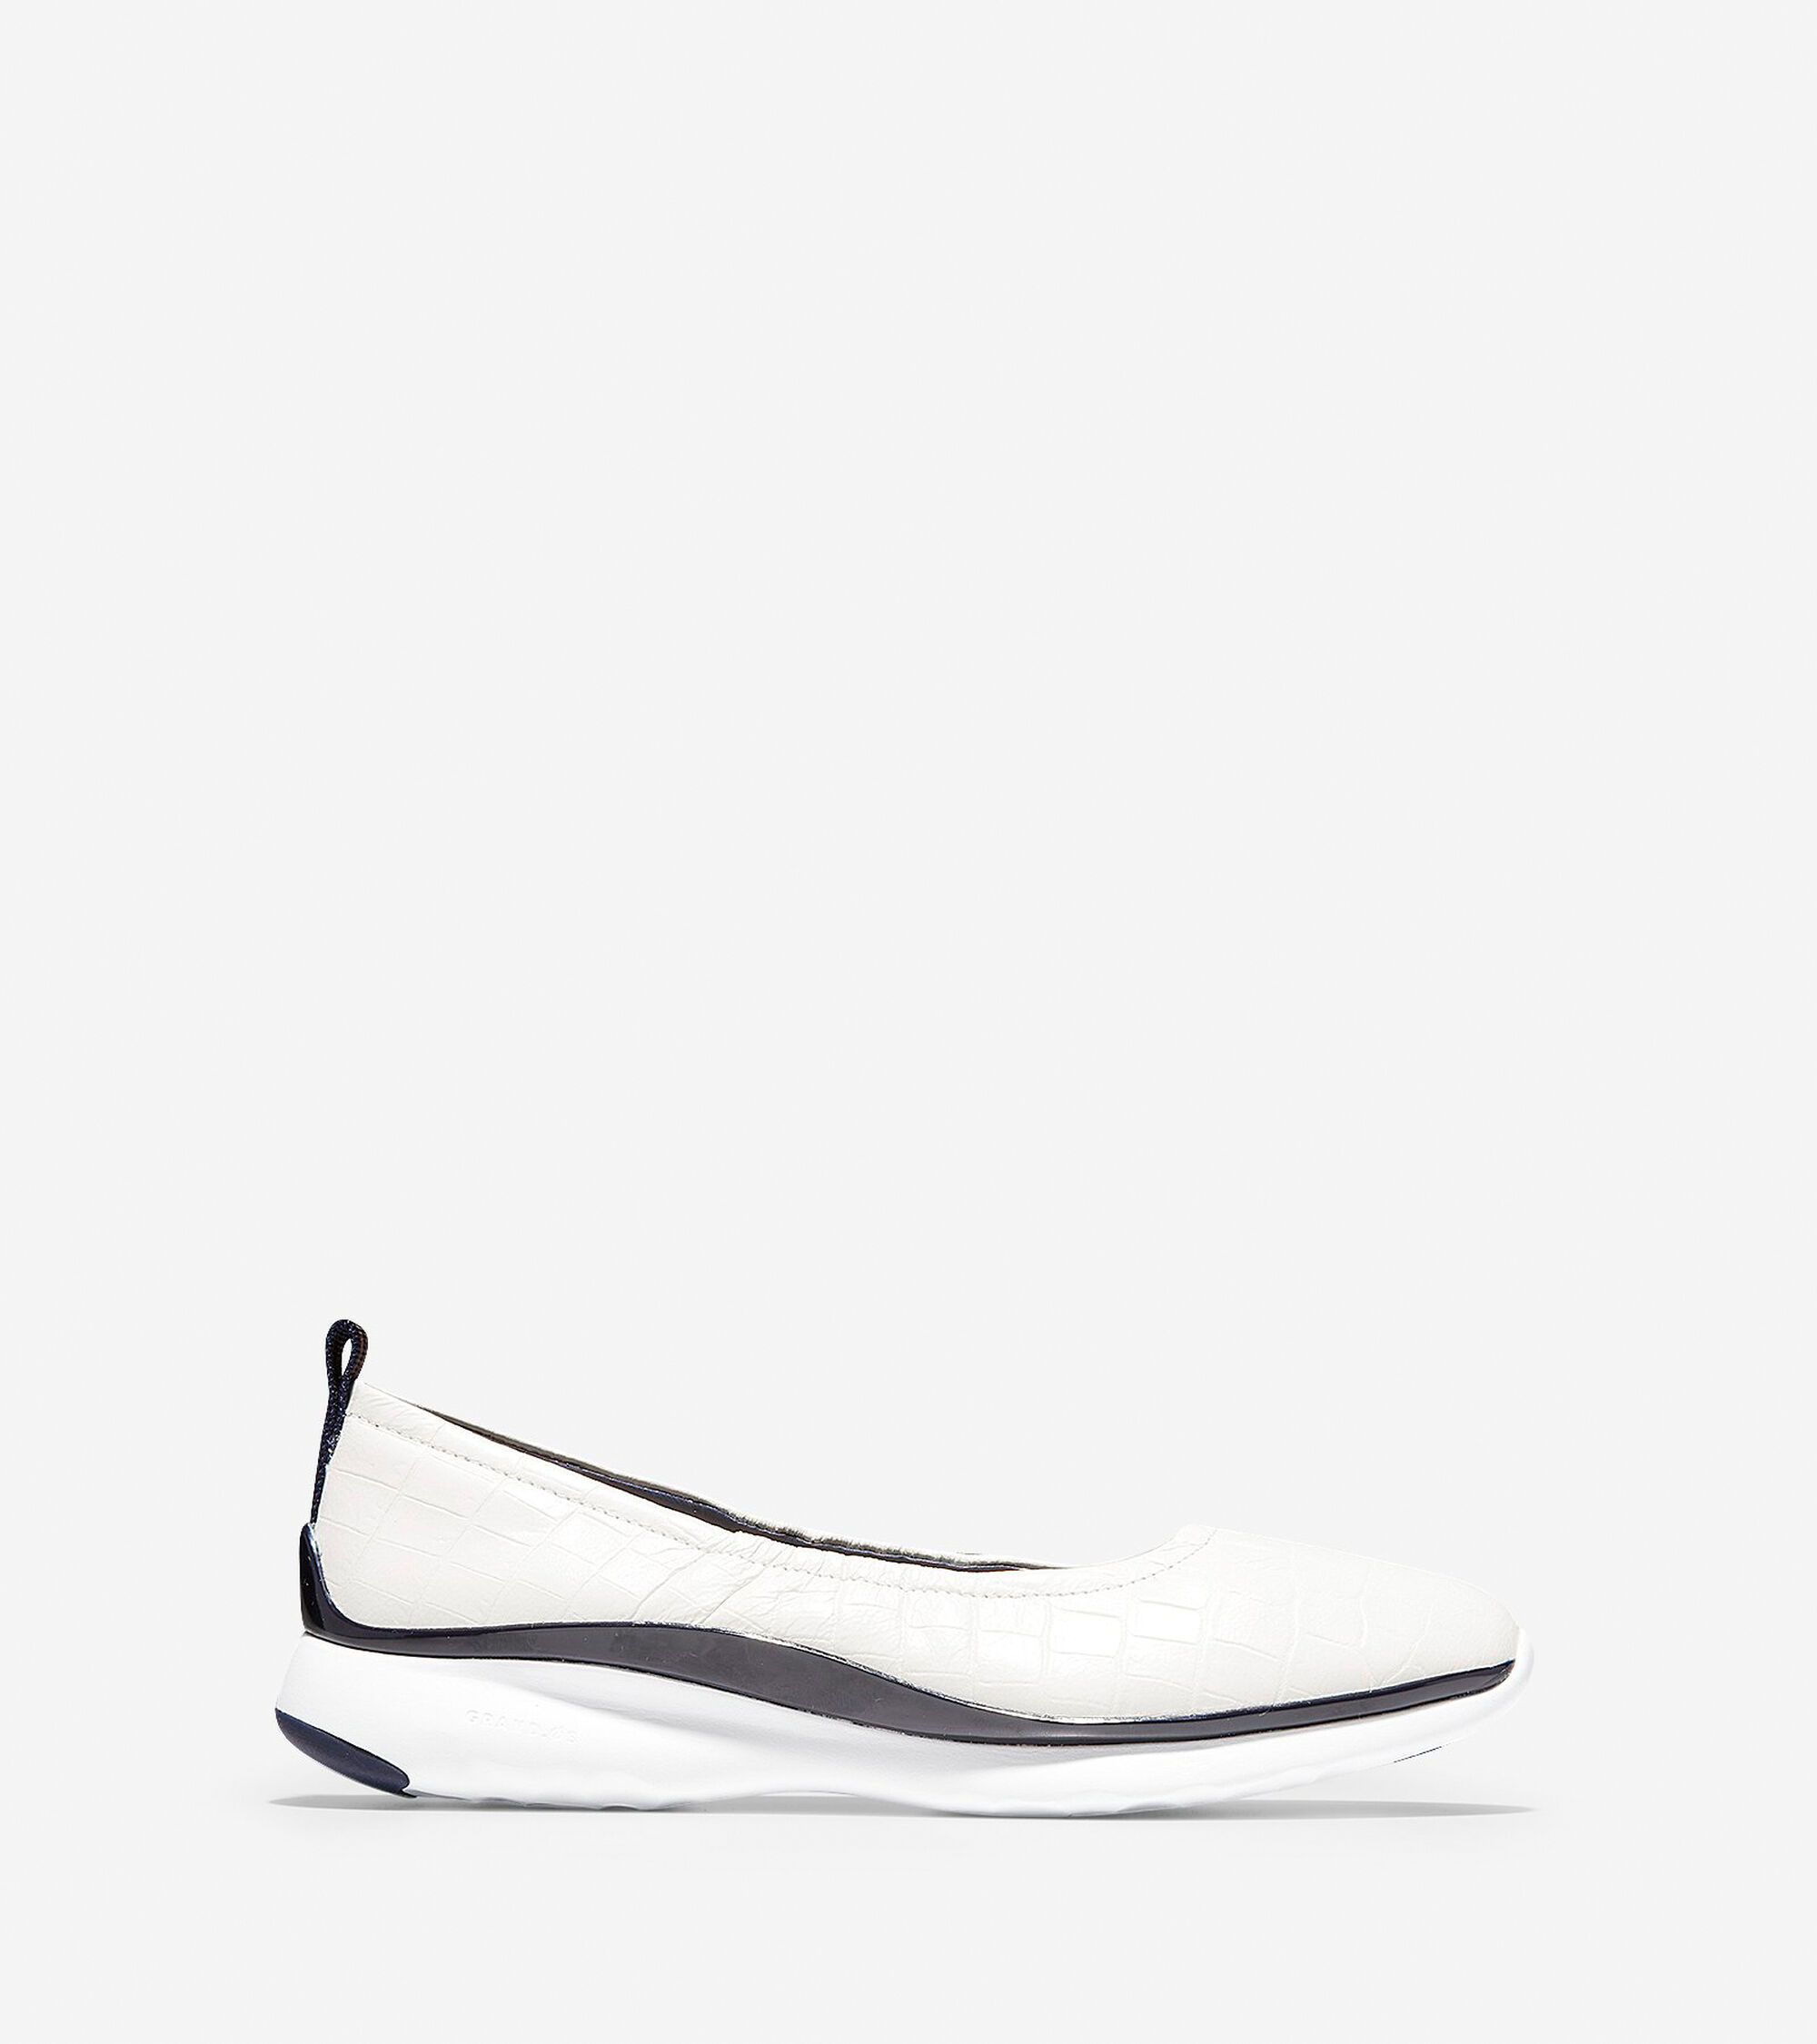 aaf4644e4bf Women s 3.ZEROGRAND Ruched Slip-On Ballet Flats in White Croc